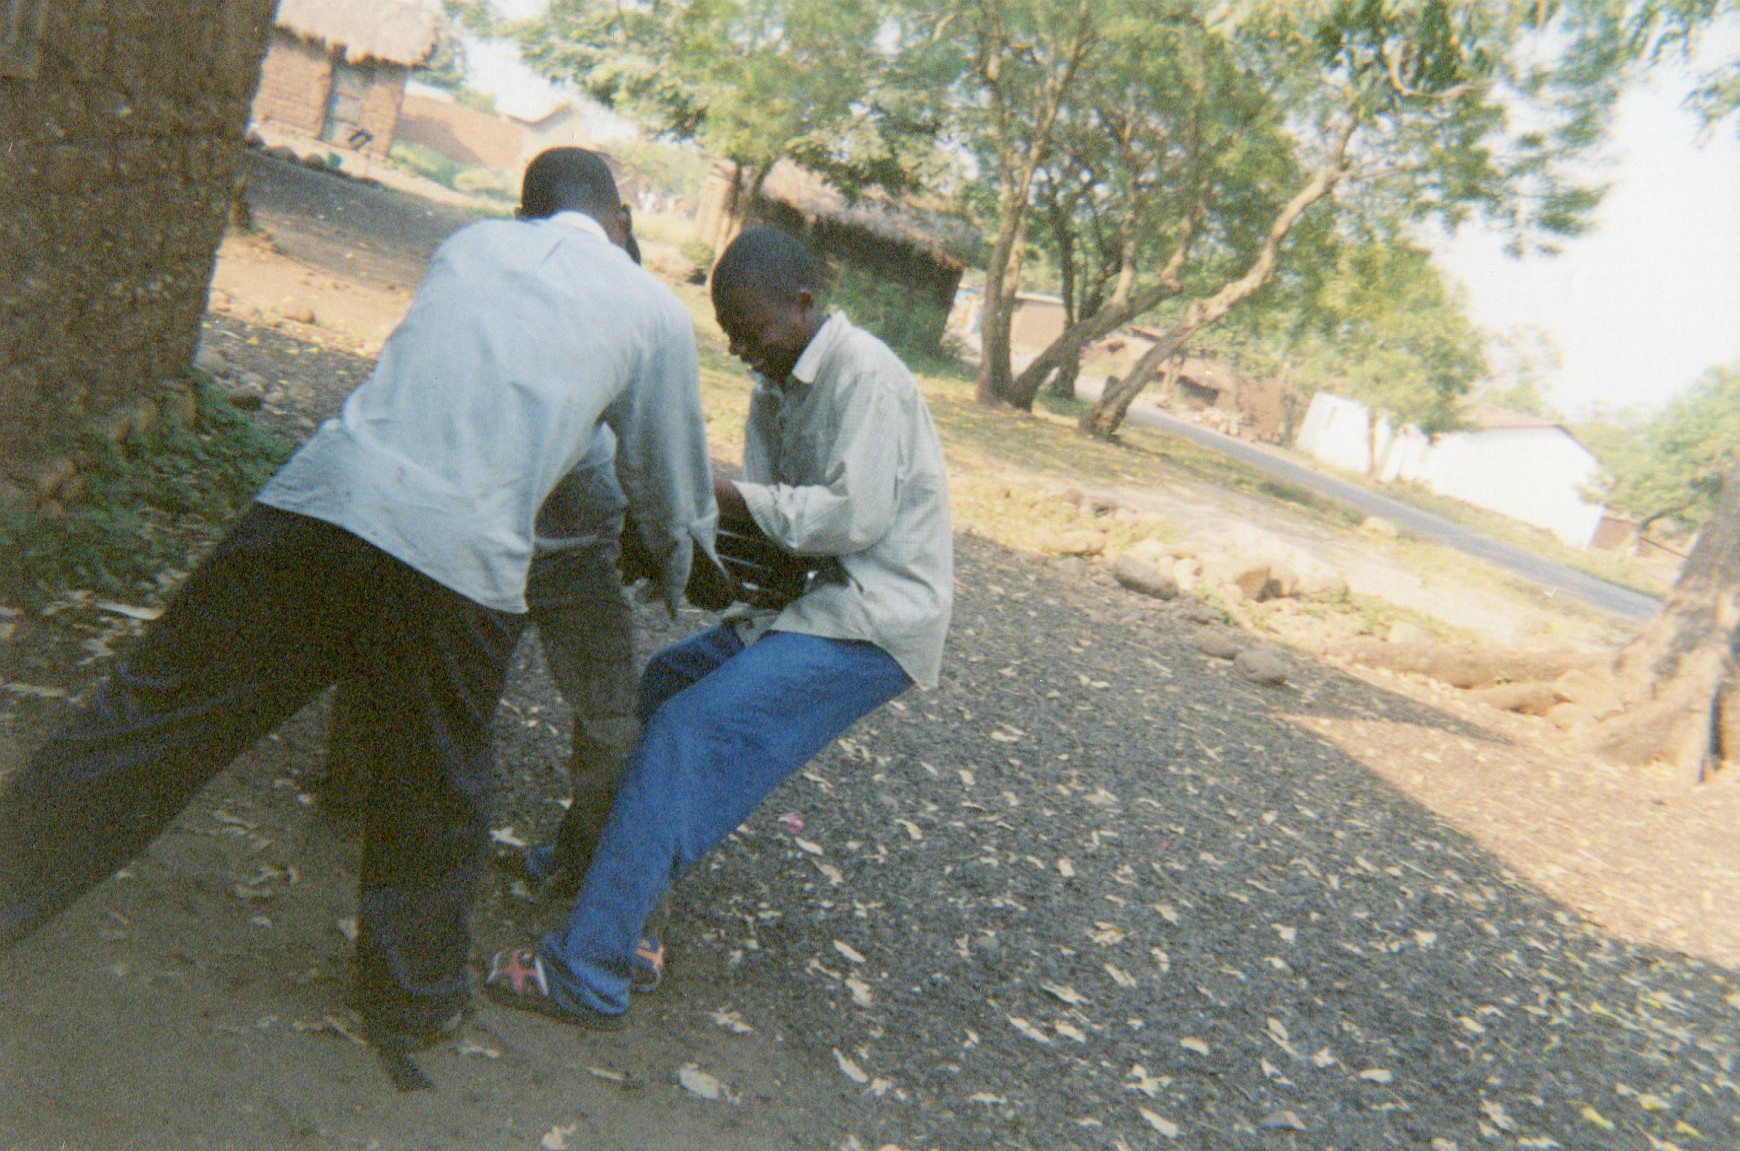 This photo shows the inadequacies of the reintegration and reinsertion kit for tailoring — these three young people are in a dispute regarding a sewing machine included in a reinsertion kit.